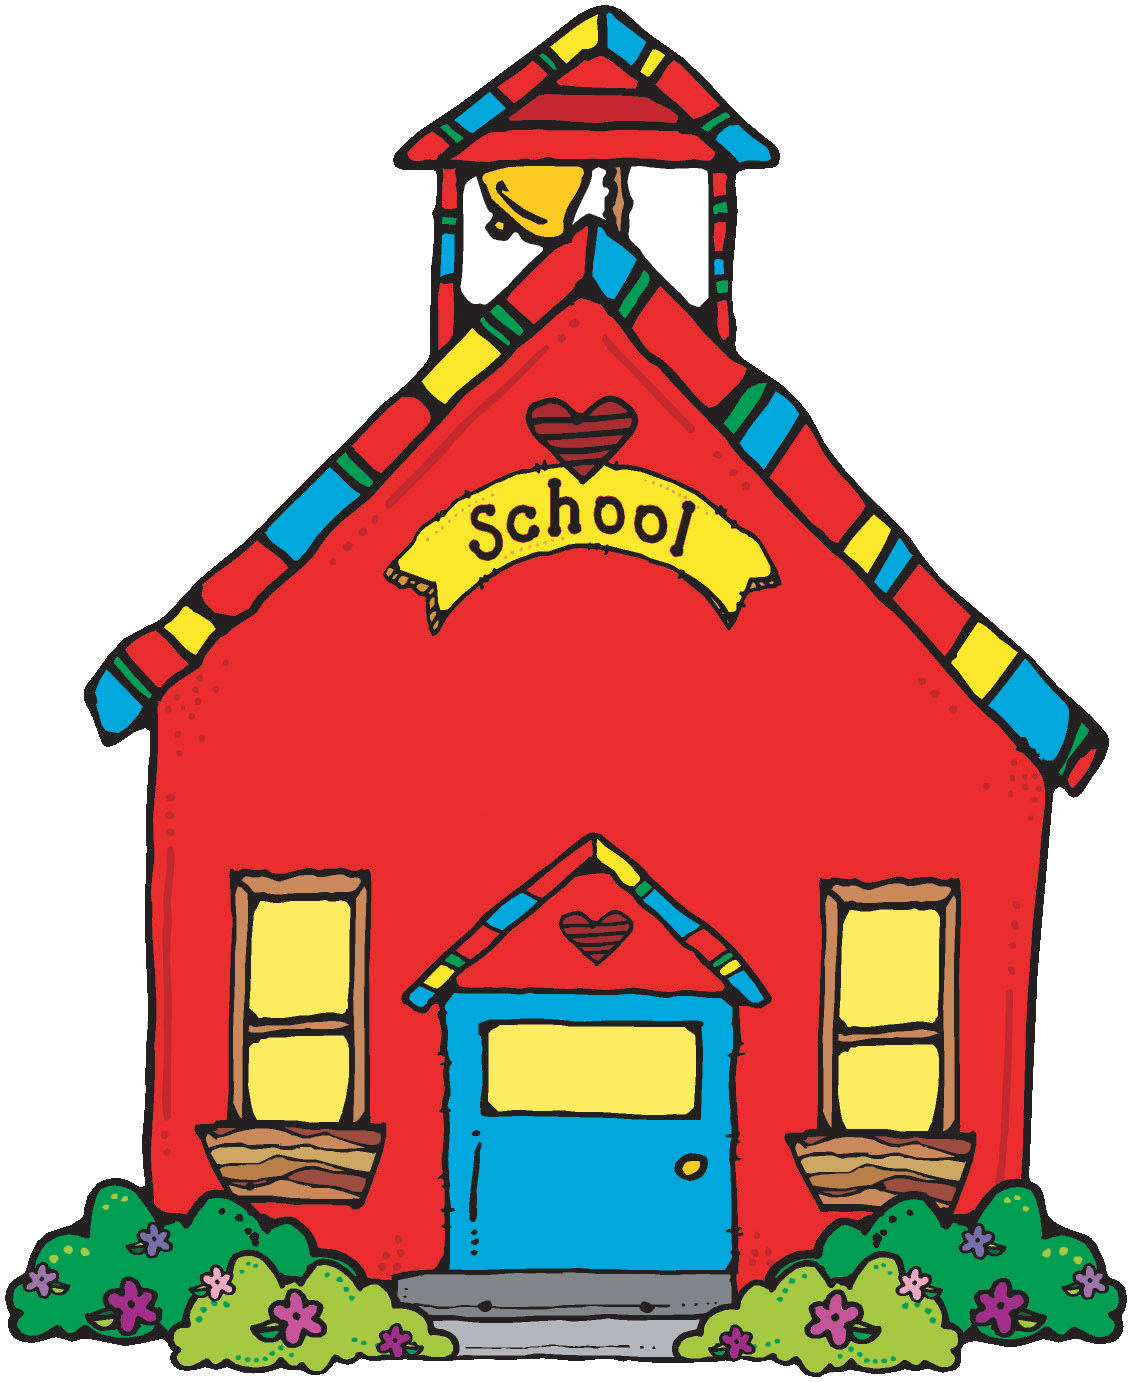 Cute school clip art.